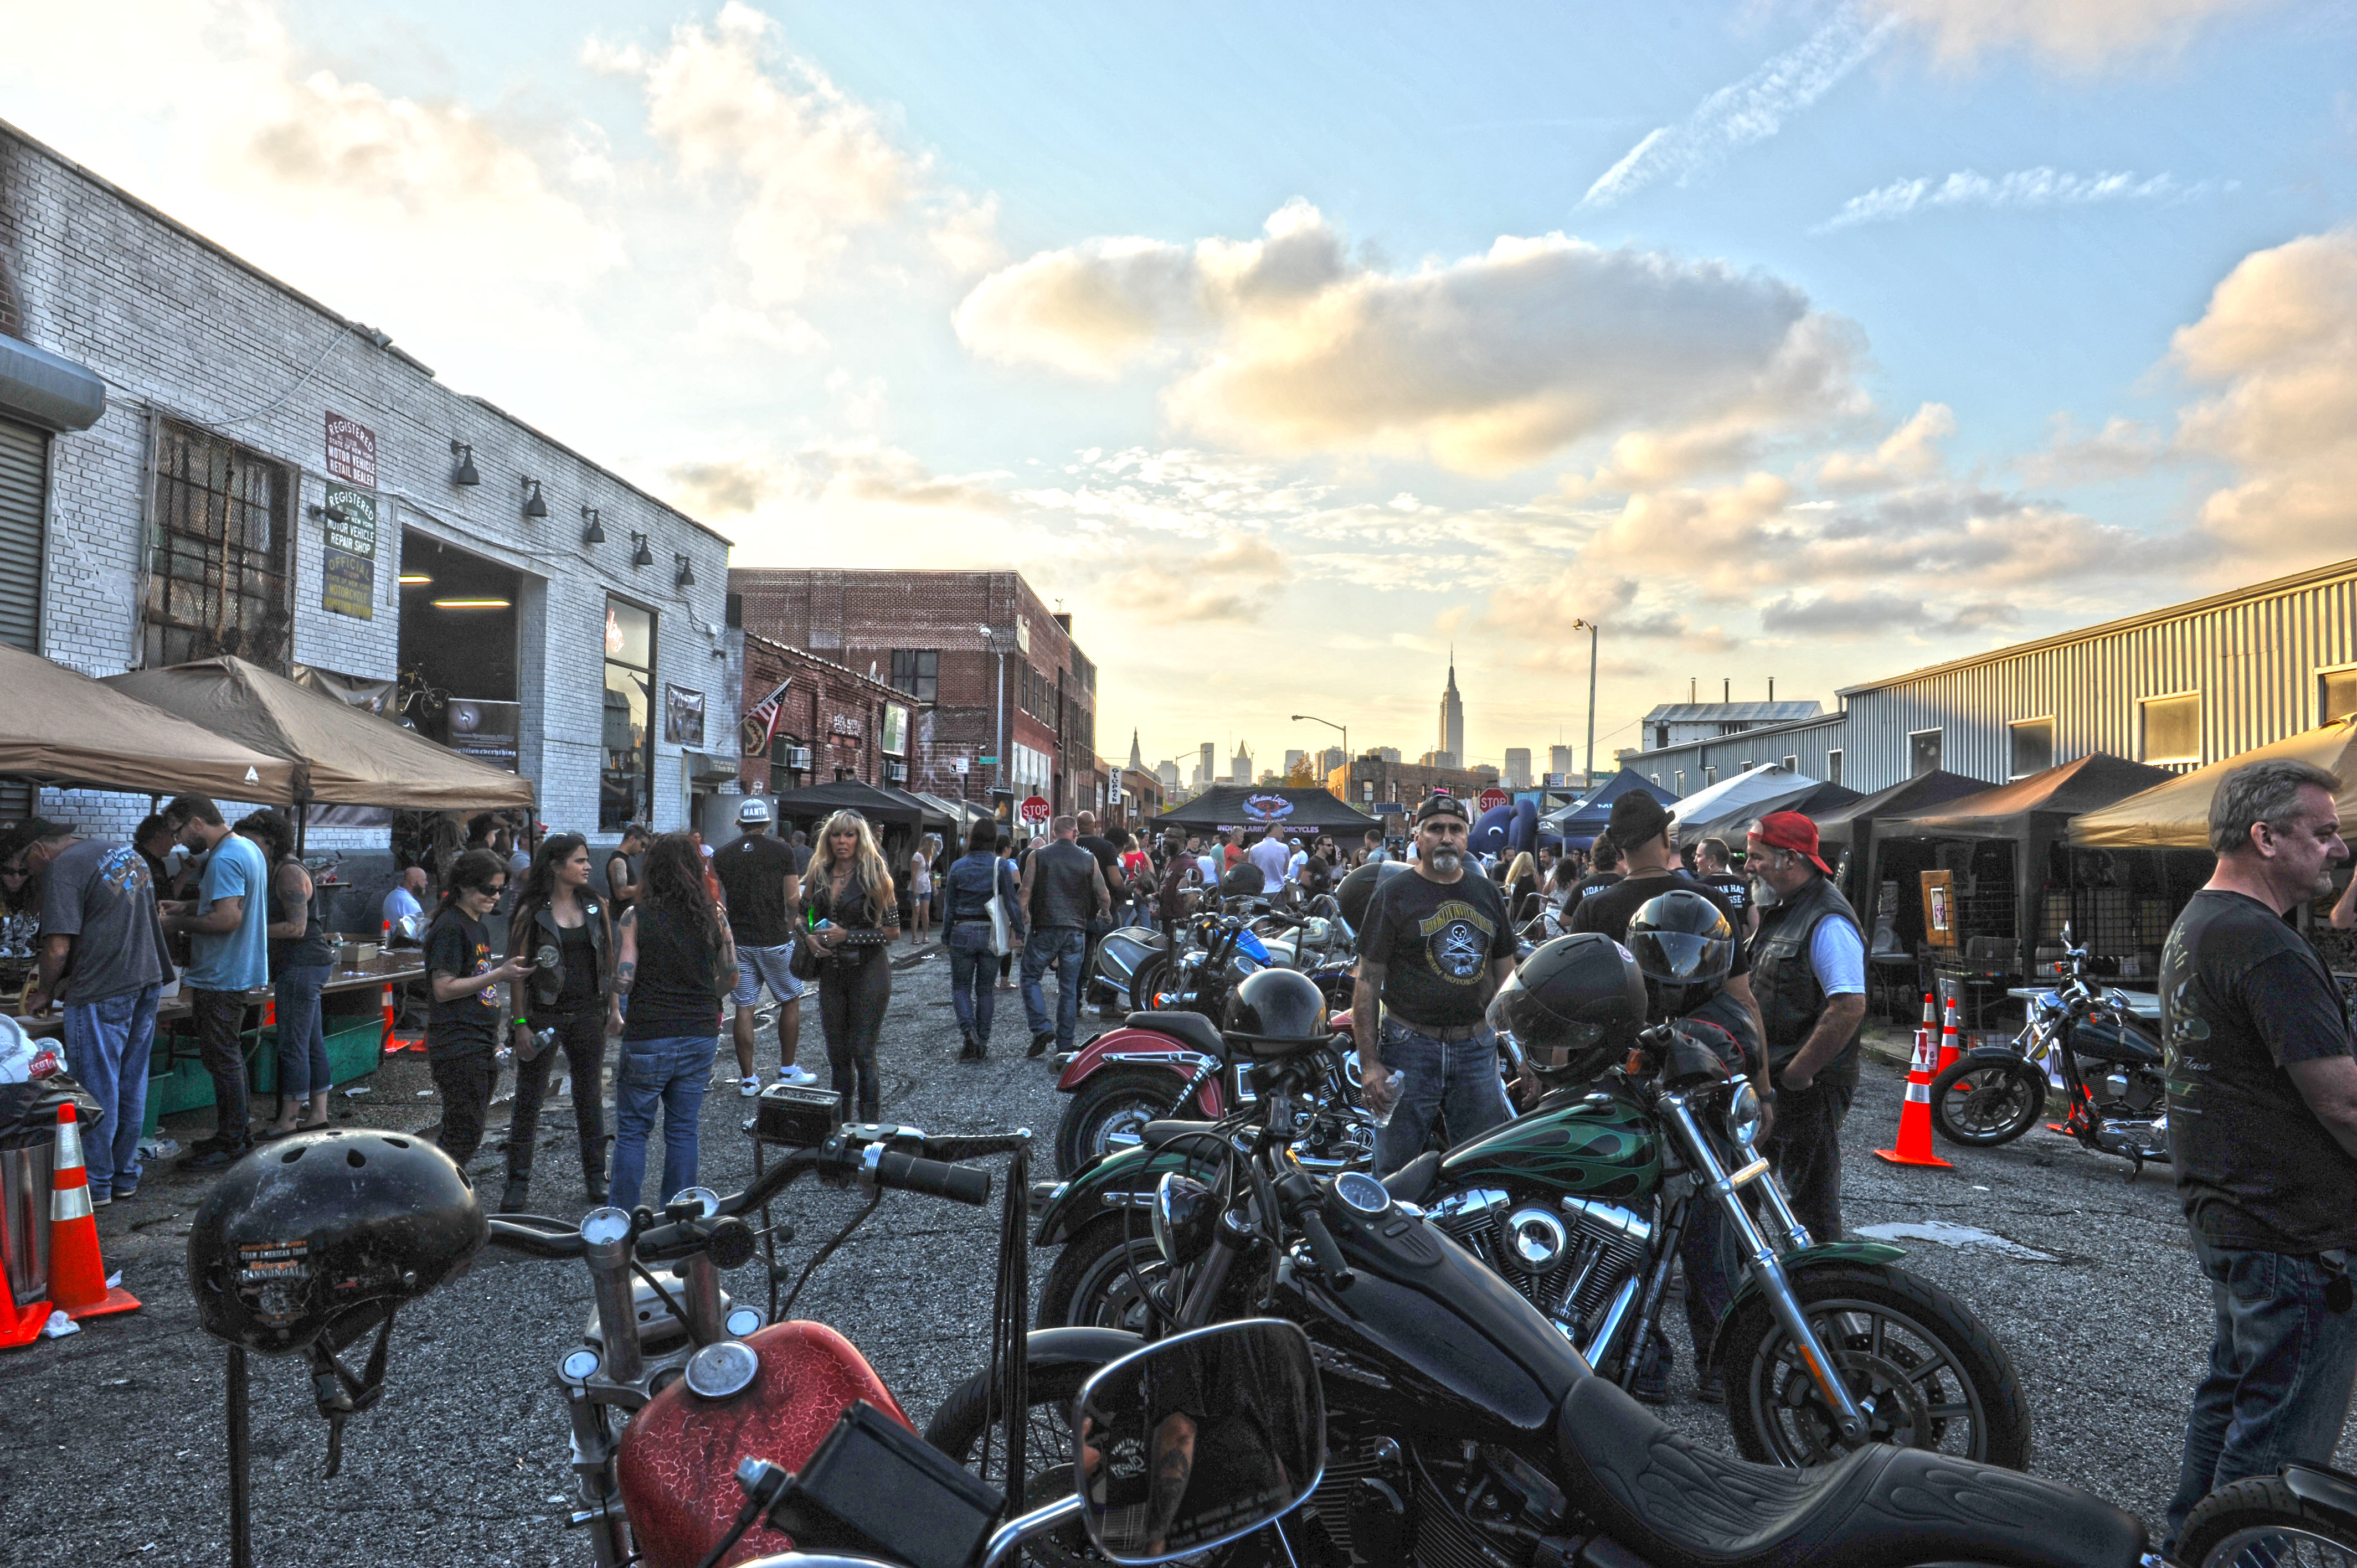 THE 2015 INDIAN LARRY GREASE MONKEY BLOCK PARTY